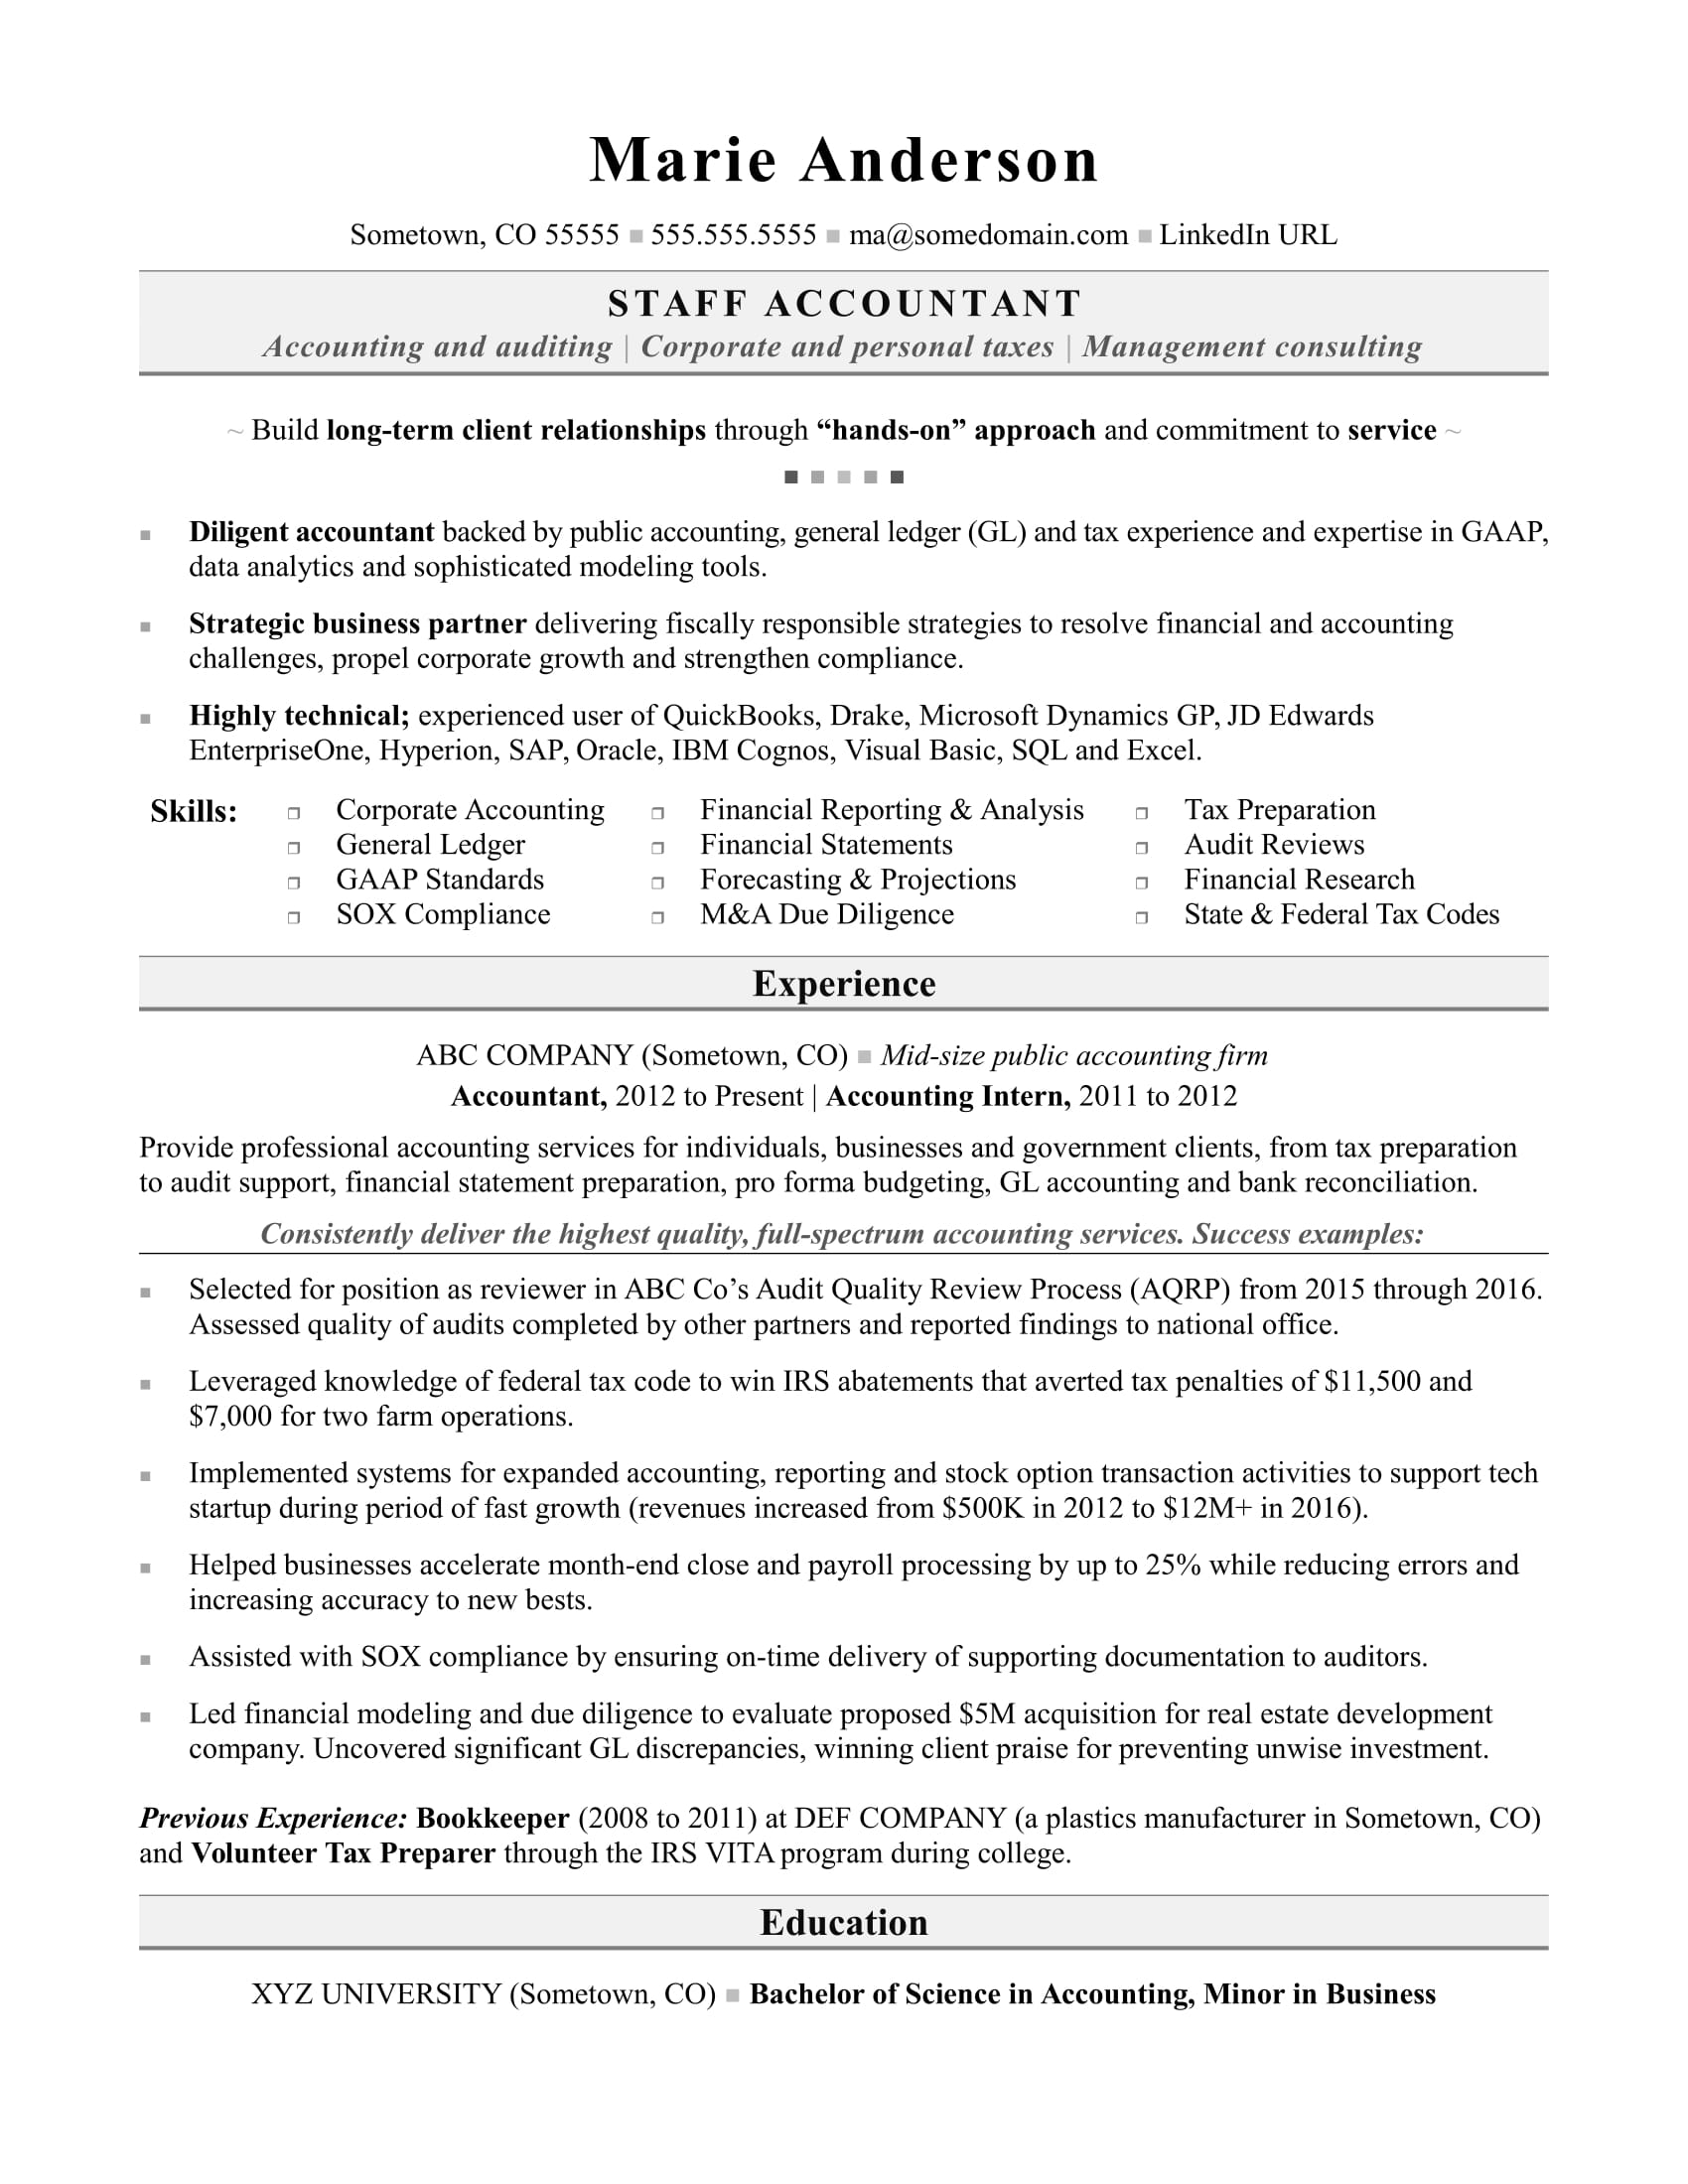 sample accounting resumes - Boat.jeremyeaton.co